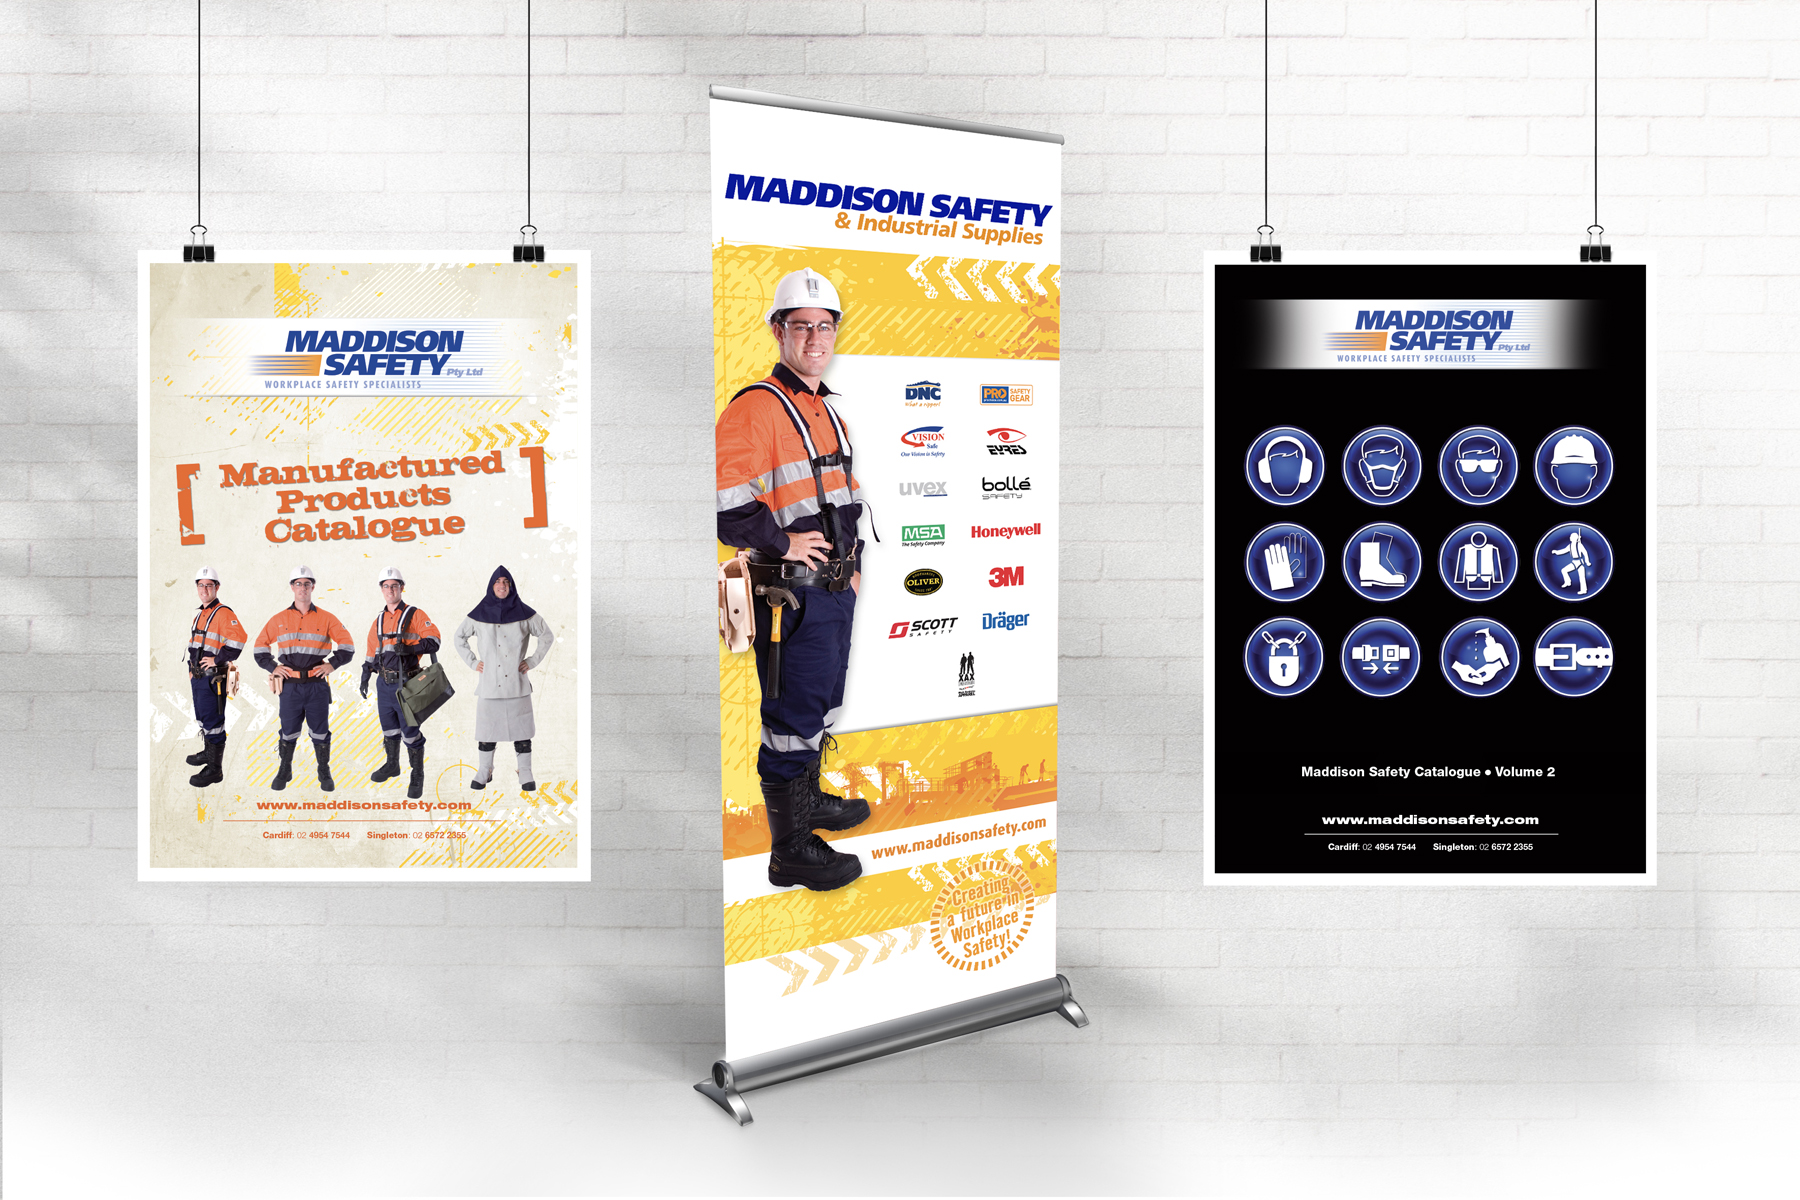 Maddison Safety Pull-up Banner and Catalogue Covers